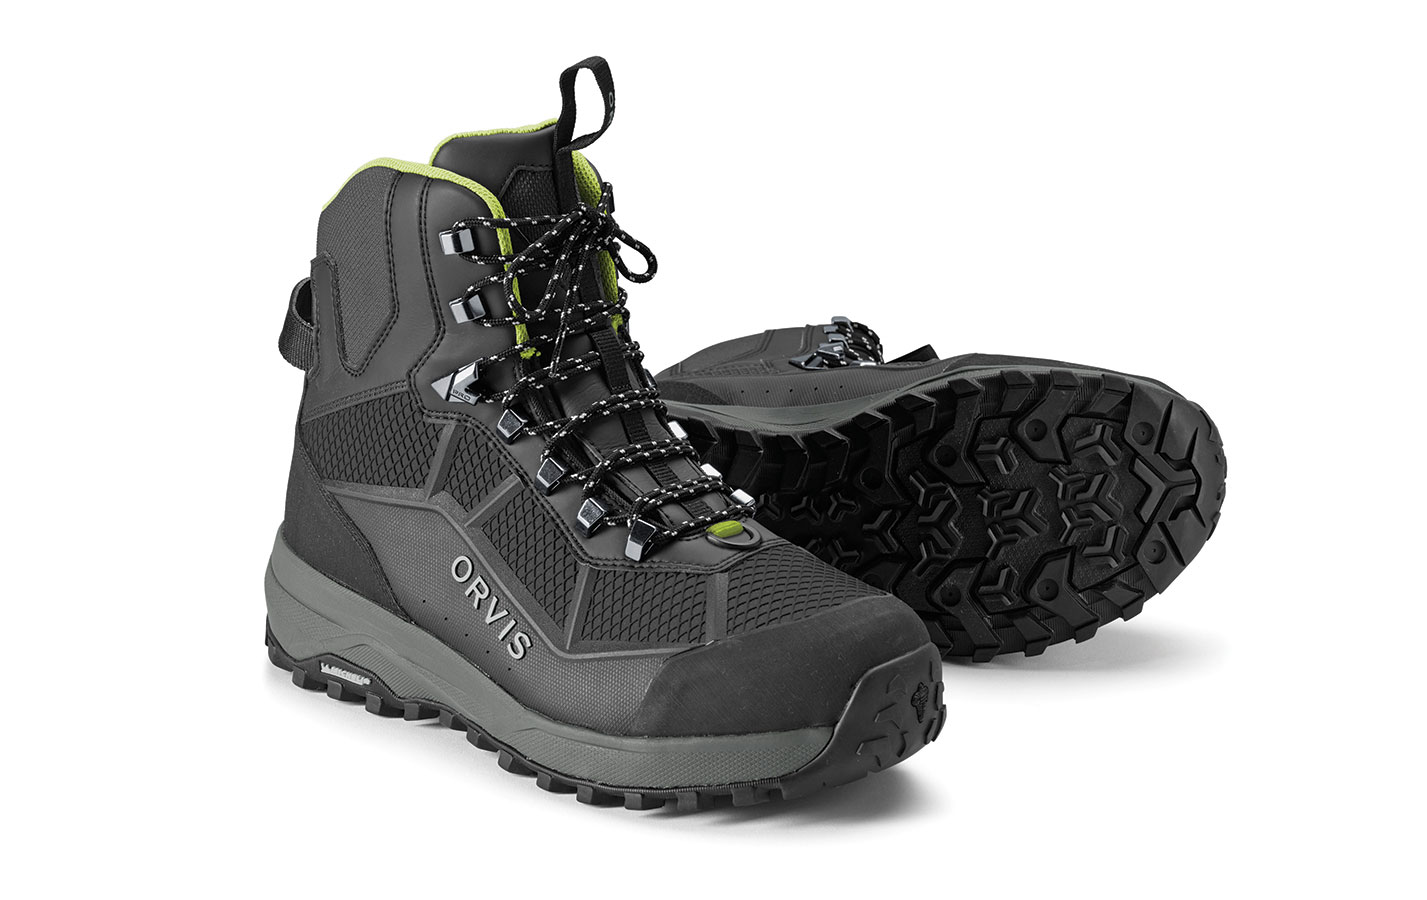 OrvisMichelin PRO Wading Boot Fly Fishing MidCurrent